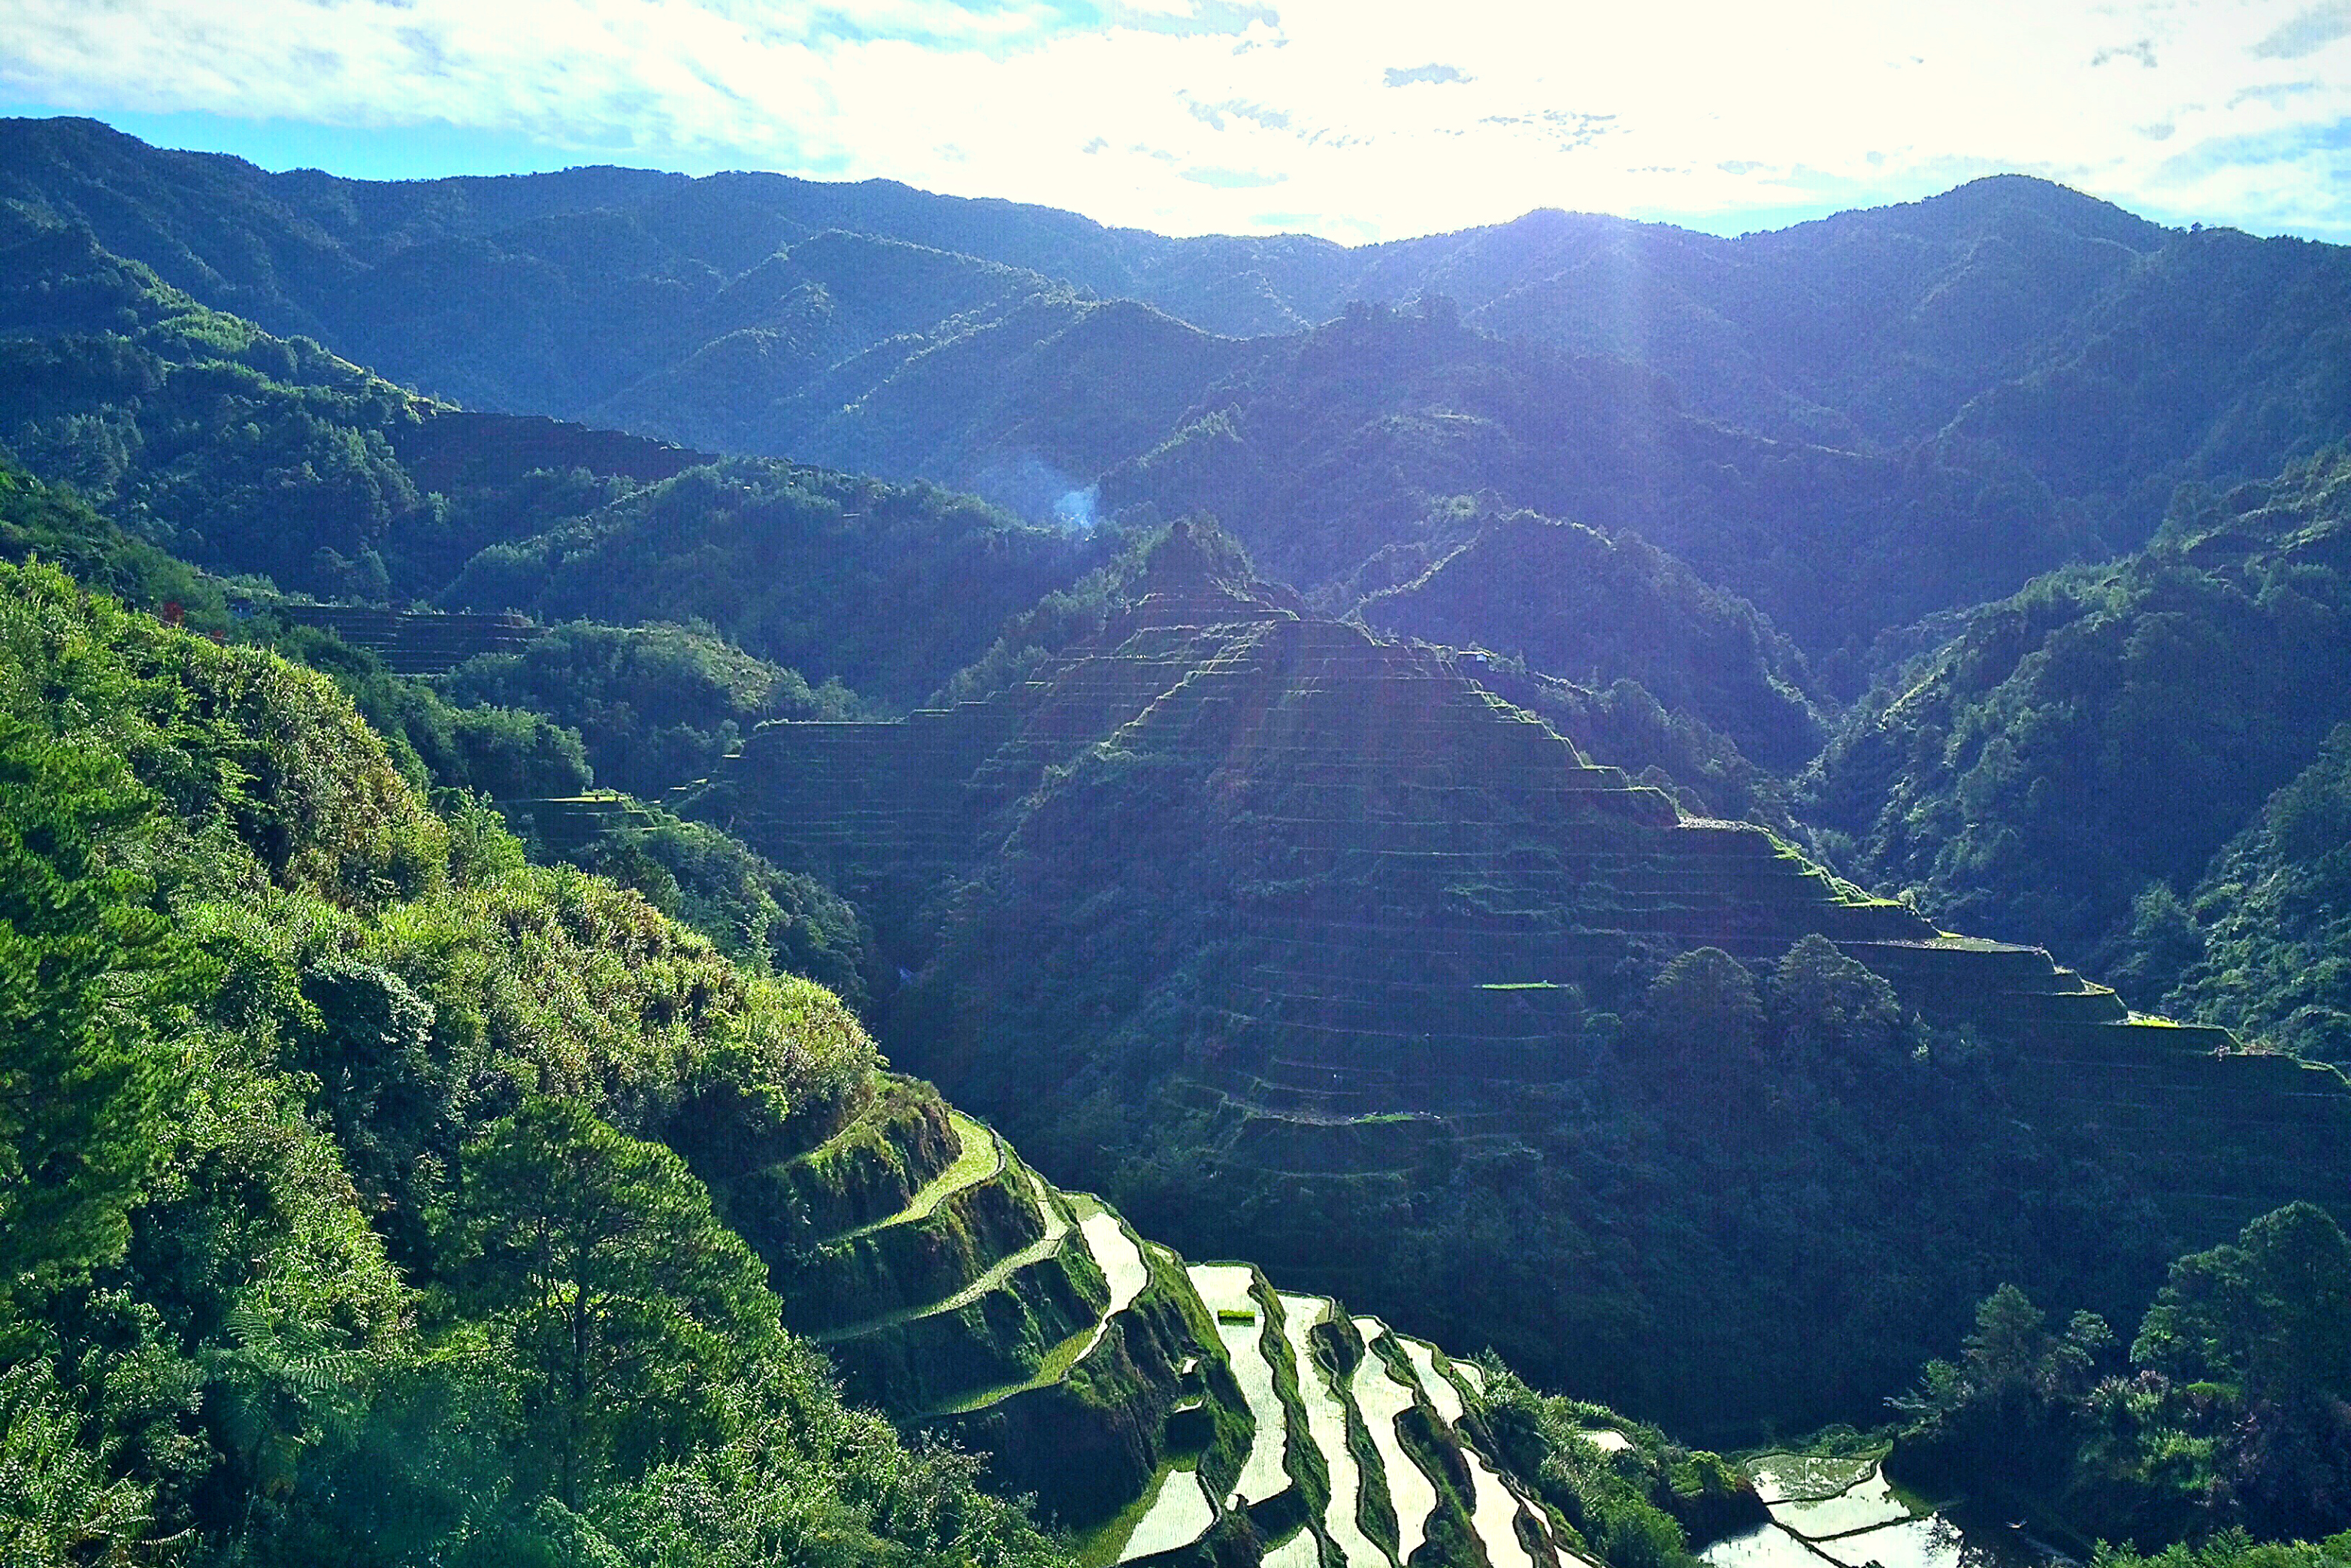 Banaue Rice Terraces, PH - 2015